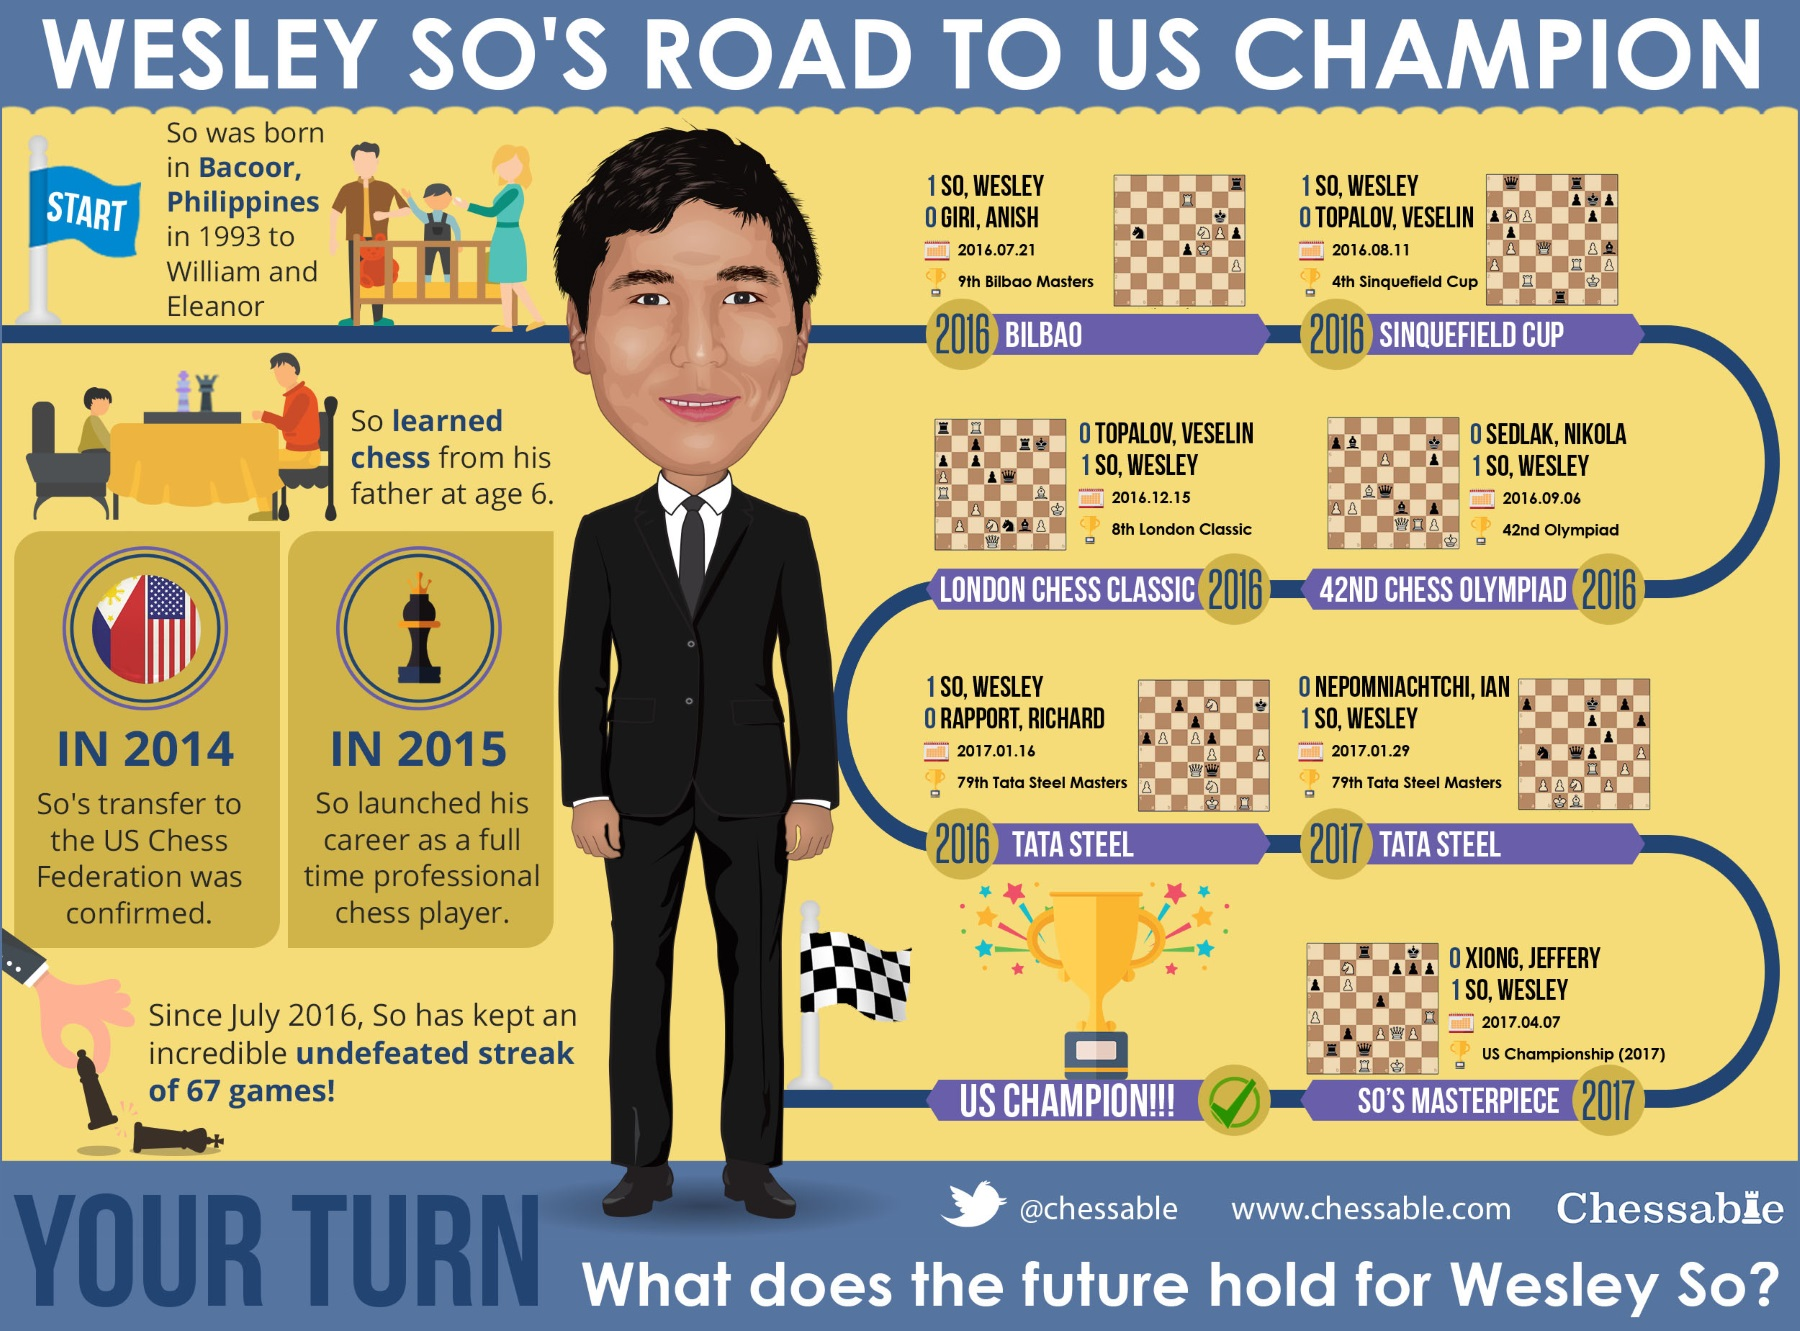 Wesley So's Road To US Champion!